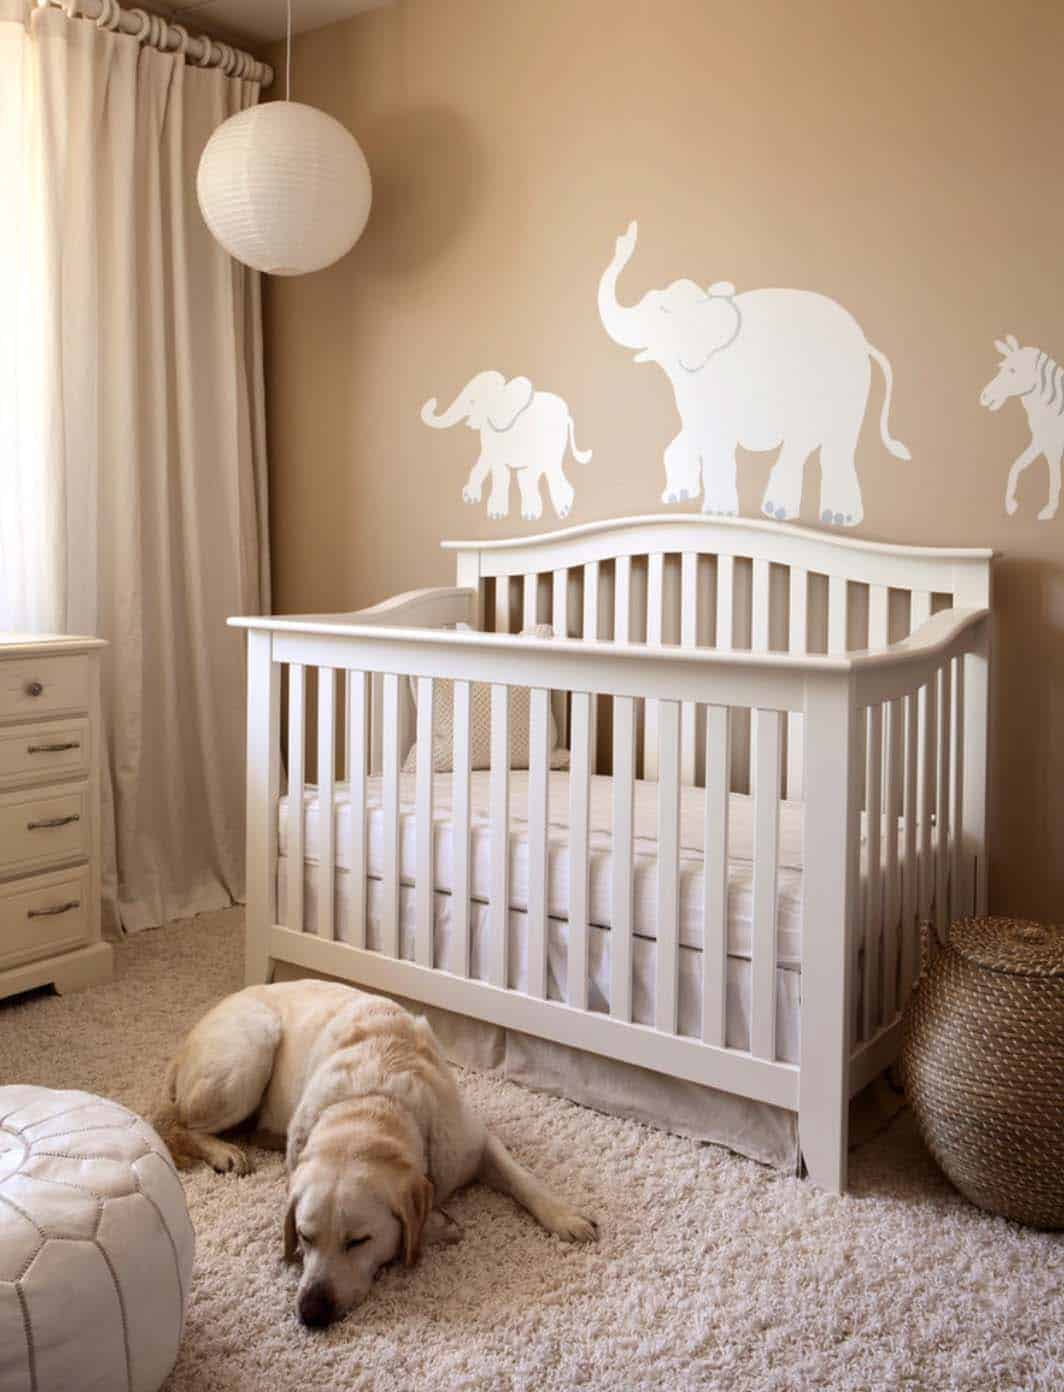 Stylish Nursery Decorating Ideas-11-1 Kindesign